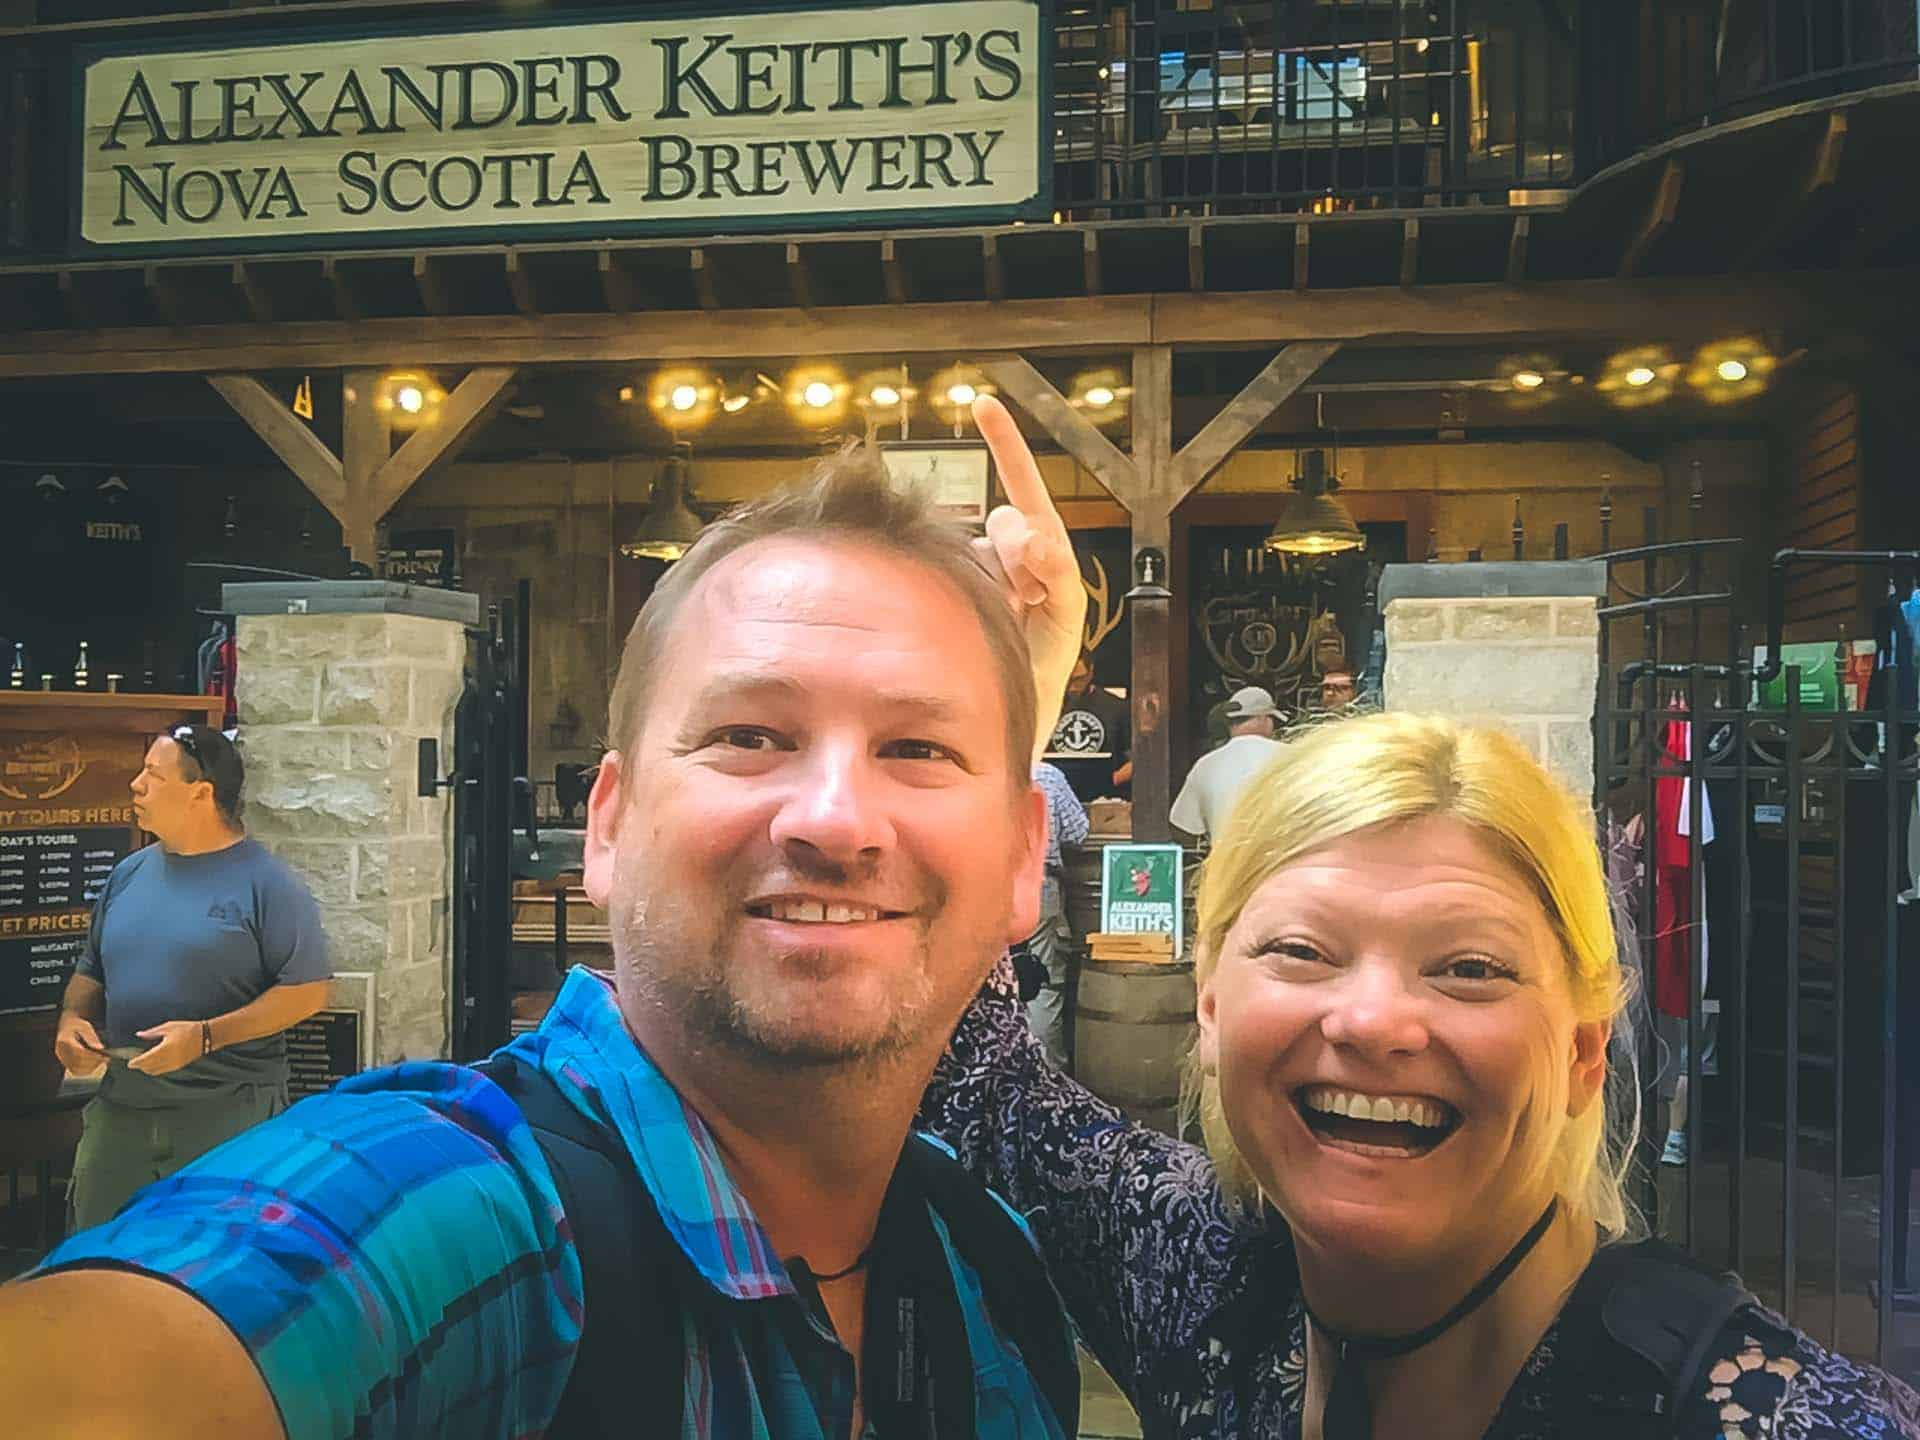 things to do in halifax alexander keith's brewery tour